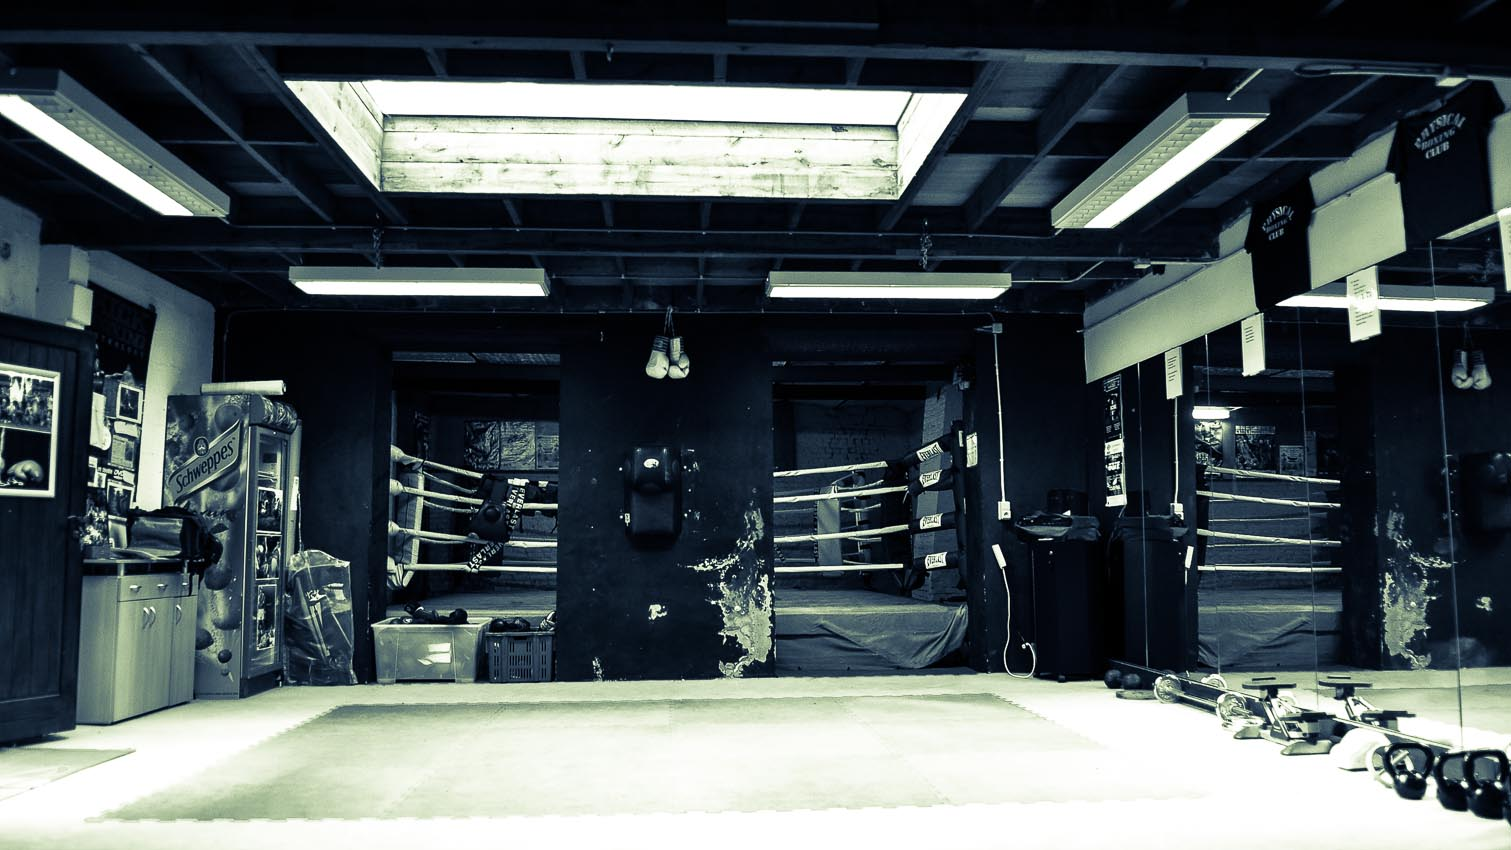 08-sport-boxe-billard-fitness-location-decors-film-cinema-photo-belgium-bruxelles